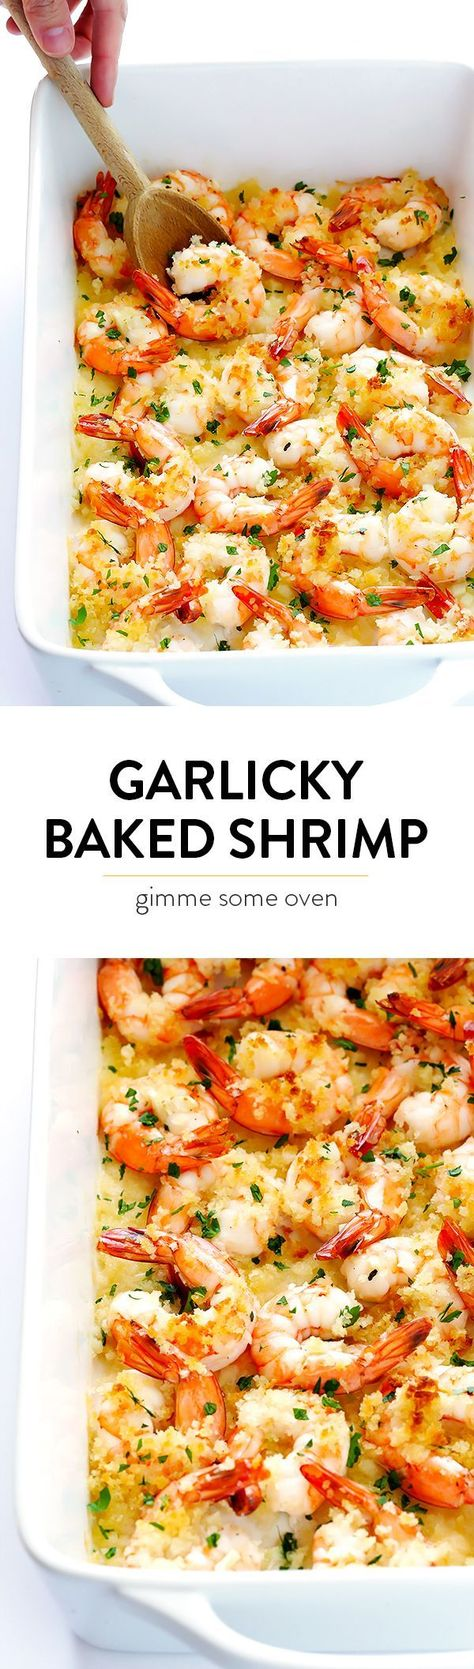 Garlicky Baked Shrimp Recipe -- one of my favorite easy dinners!  It's super quick, calls for just a few simple ingredients, and it's always SO delicious. |